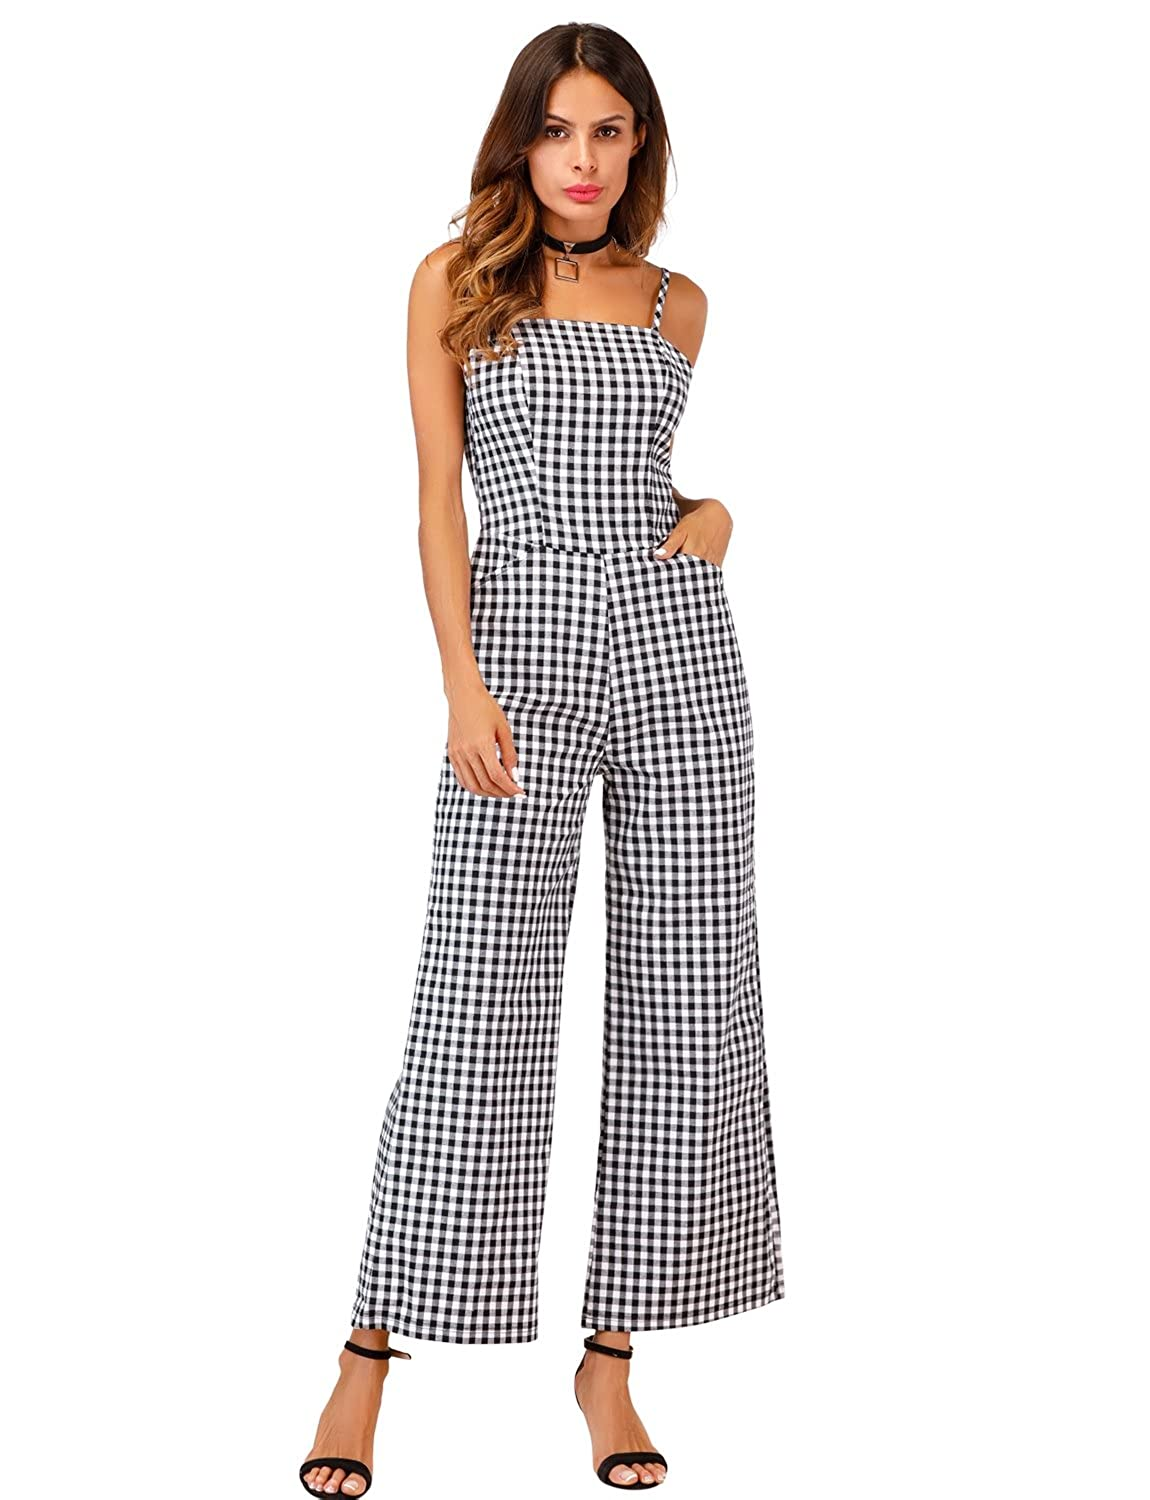 32a27fdd840 Sedrinuo Womens Elegant Casual Work Jumpsuit Grid Straps Wide Leg Rompers  at Amazon Women s Clothing store